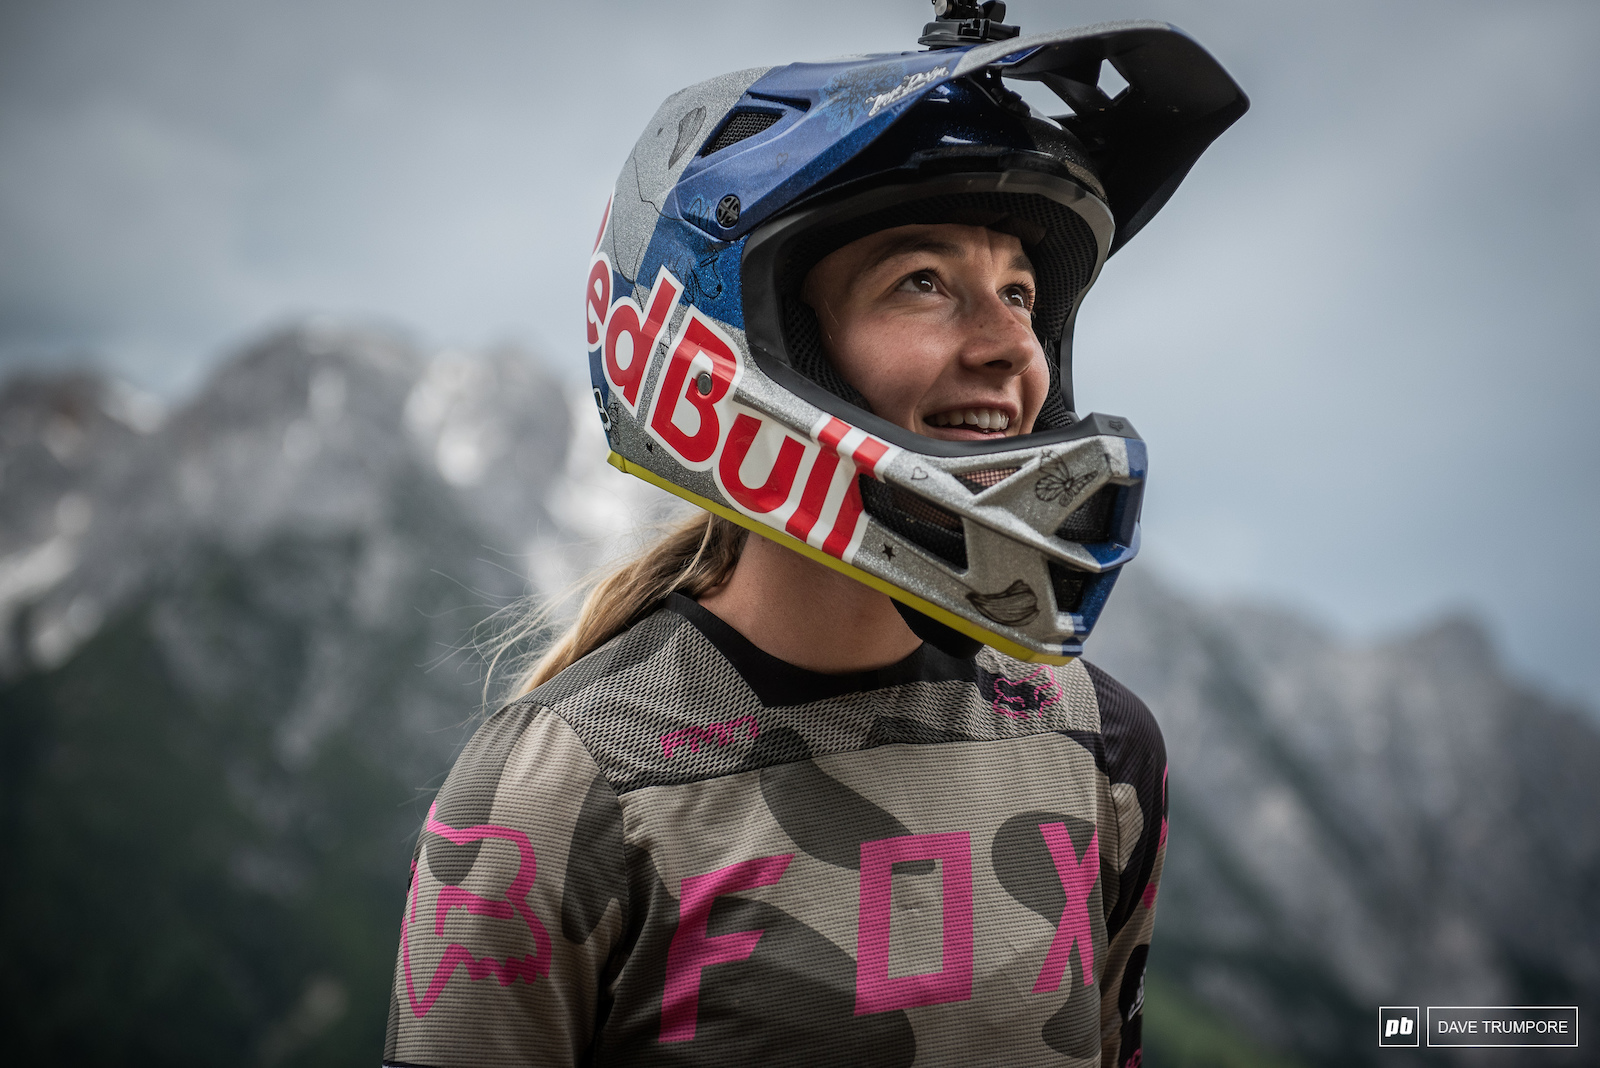 Tahnee Seagrave enjoying the improvements on track in Leogang this year and looking to repeat her winning performance from 2017.